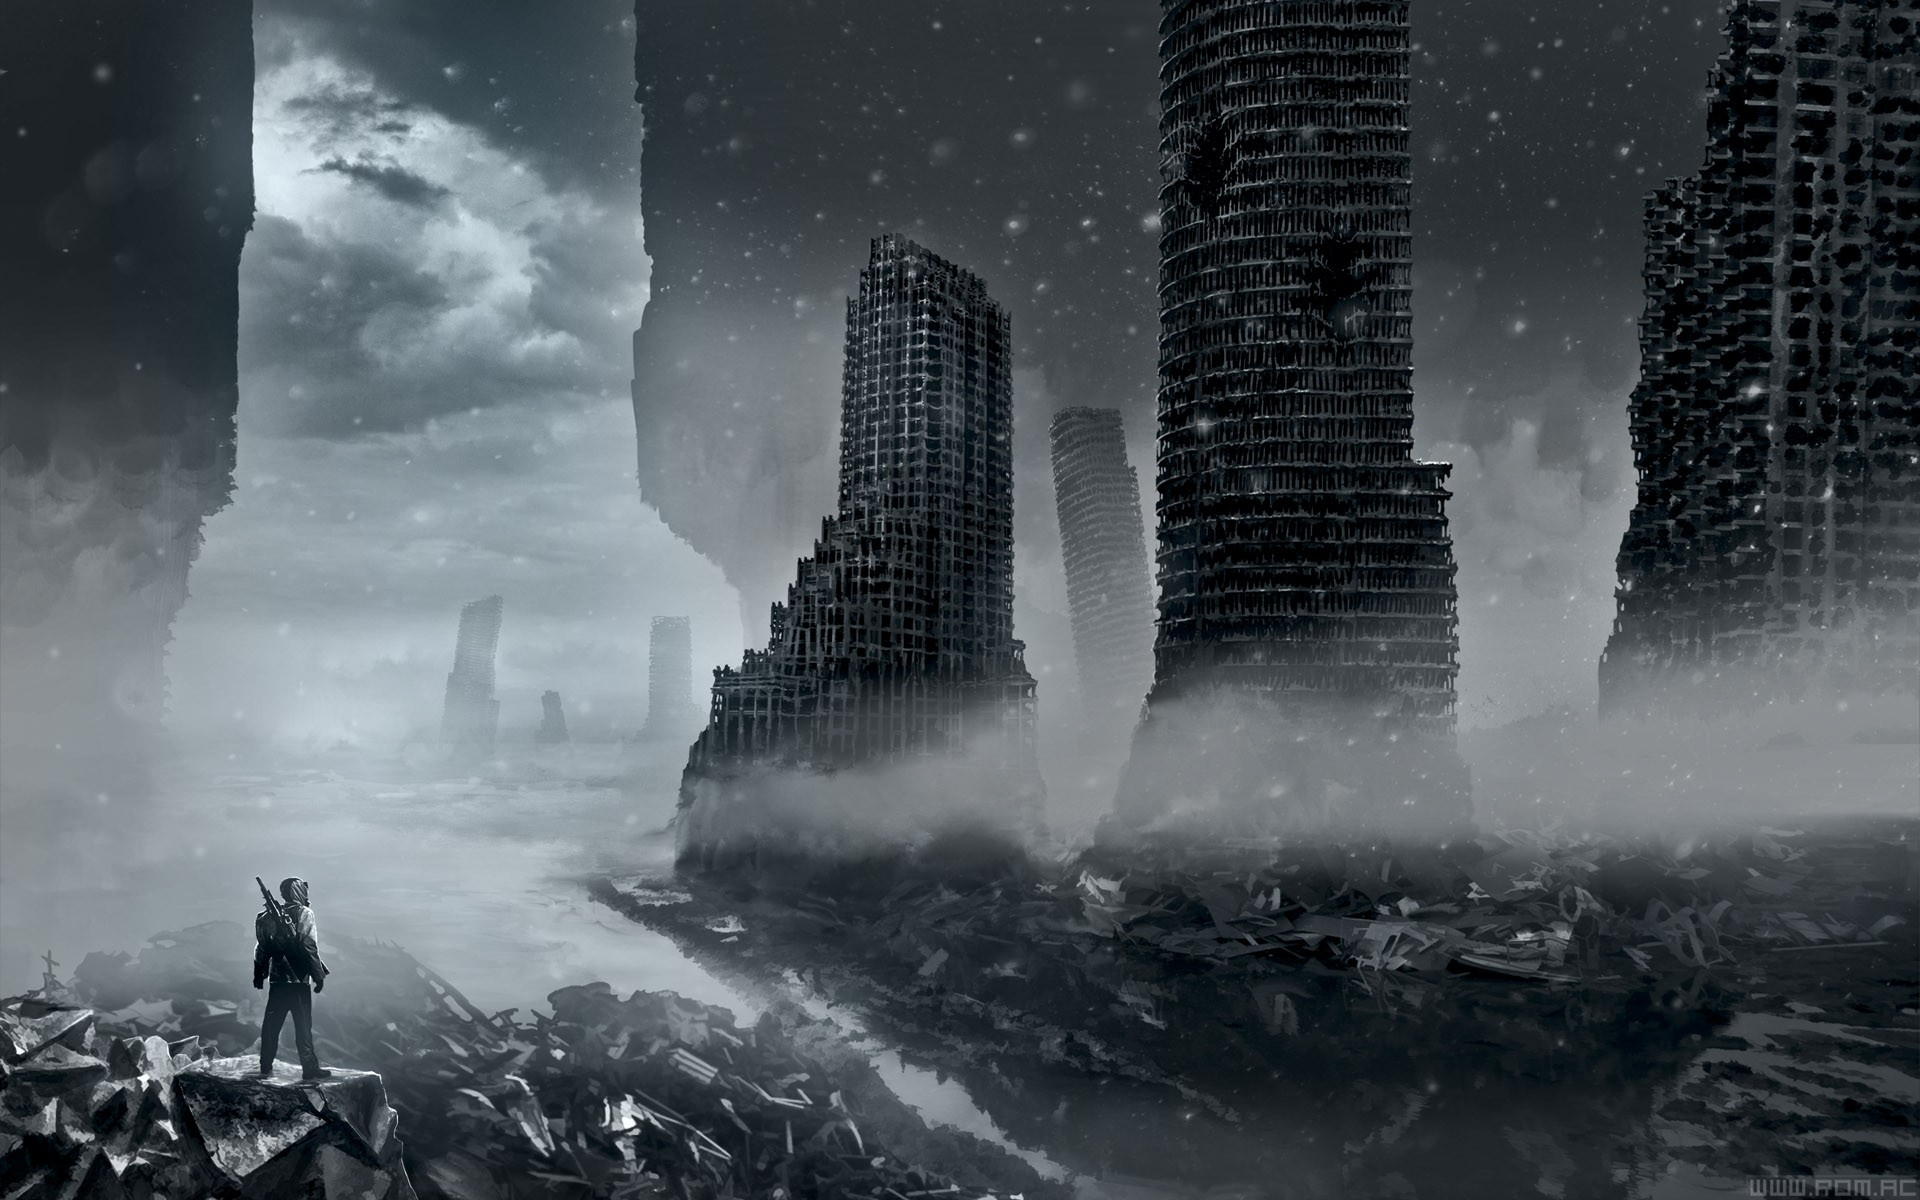 paintings, Digital, Art, Science, Fiction, Civilization, Airbrushed, Apocalyptic, Romantically, Apocalyptic, Vitaly, S, Alexius Wallpaper